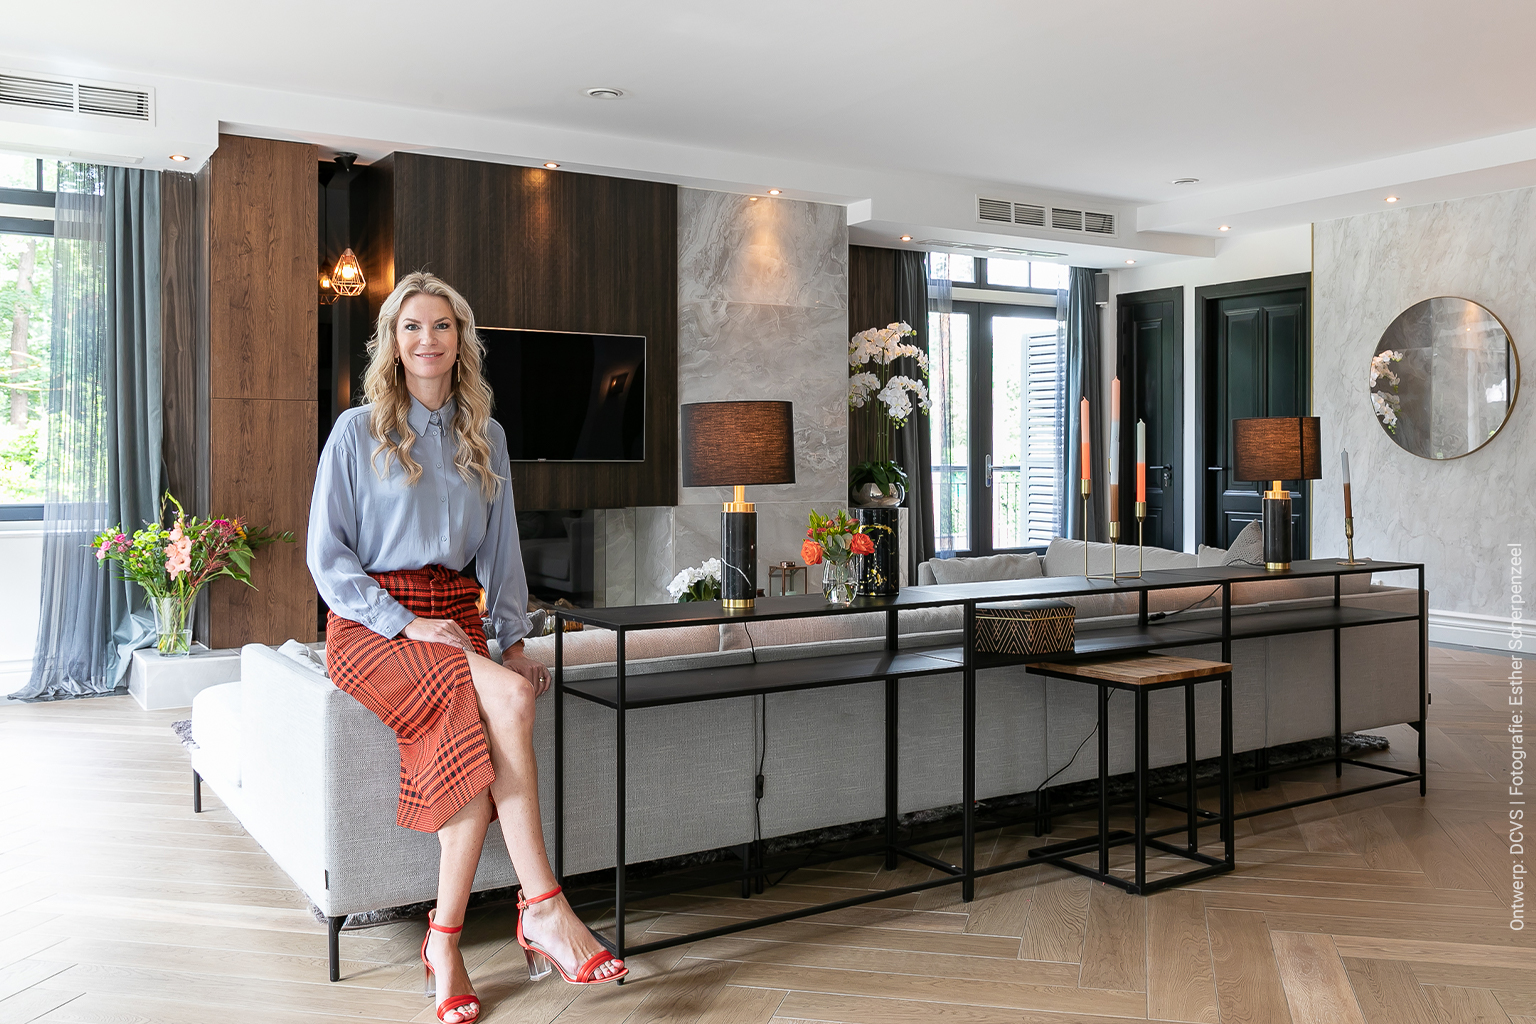 City chic meets feng shui